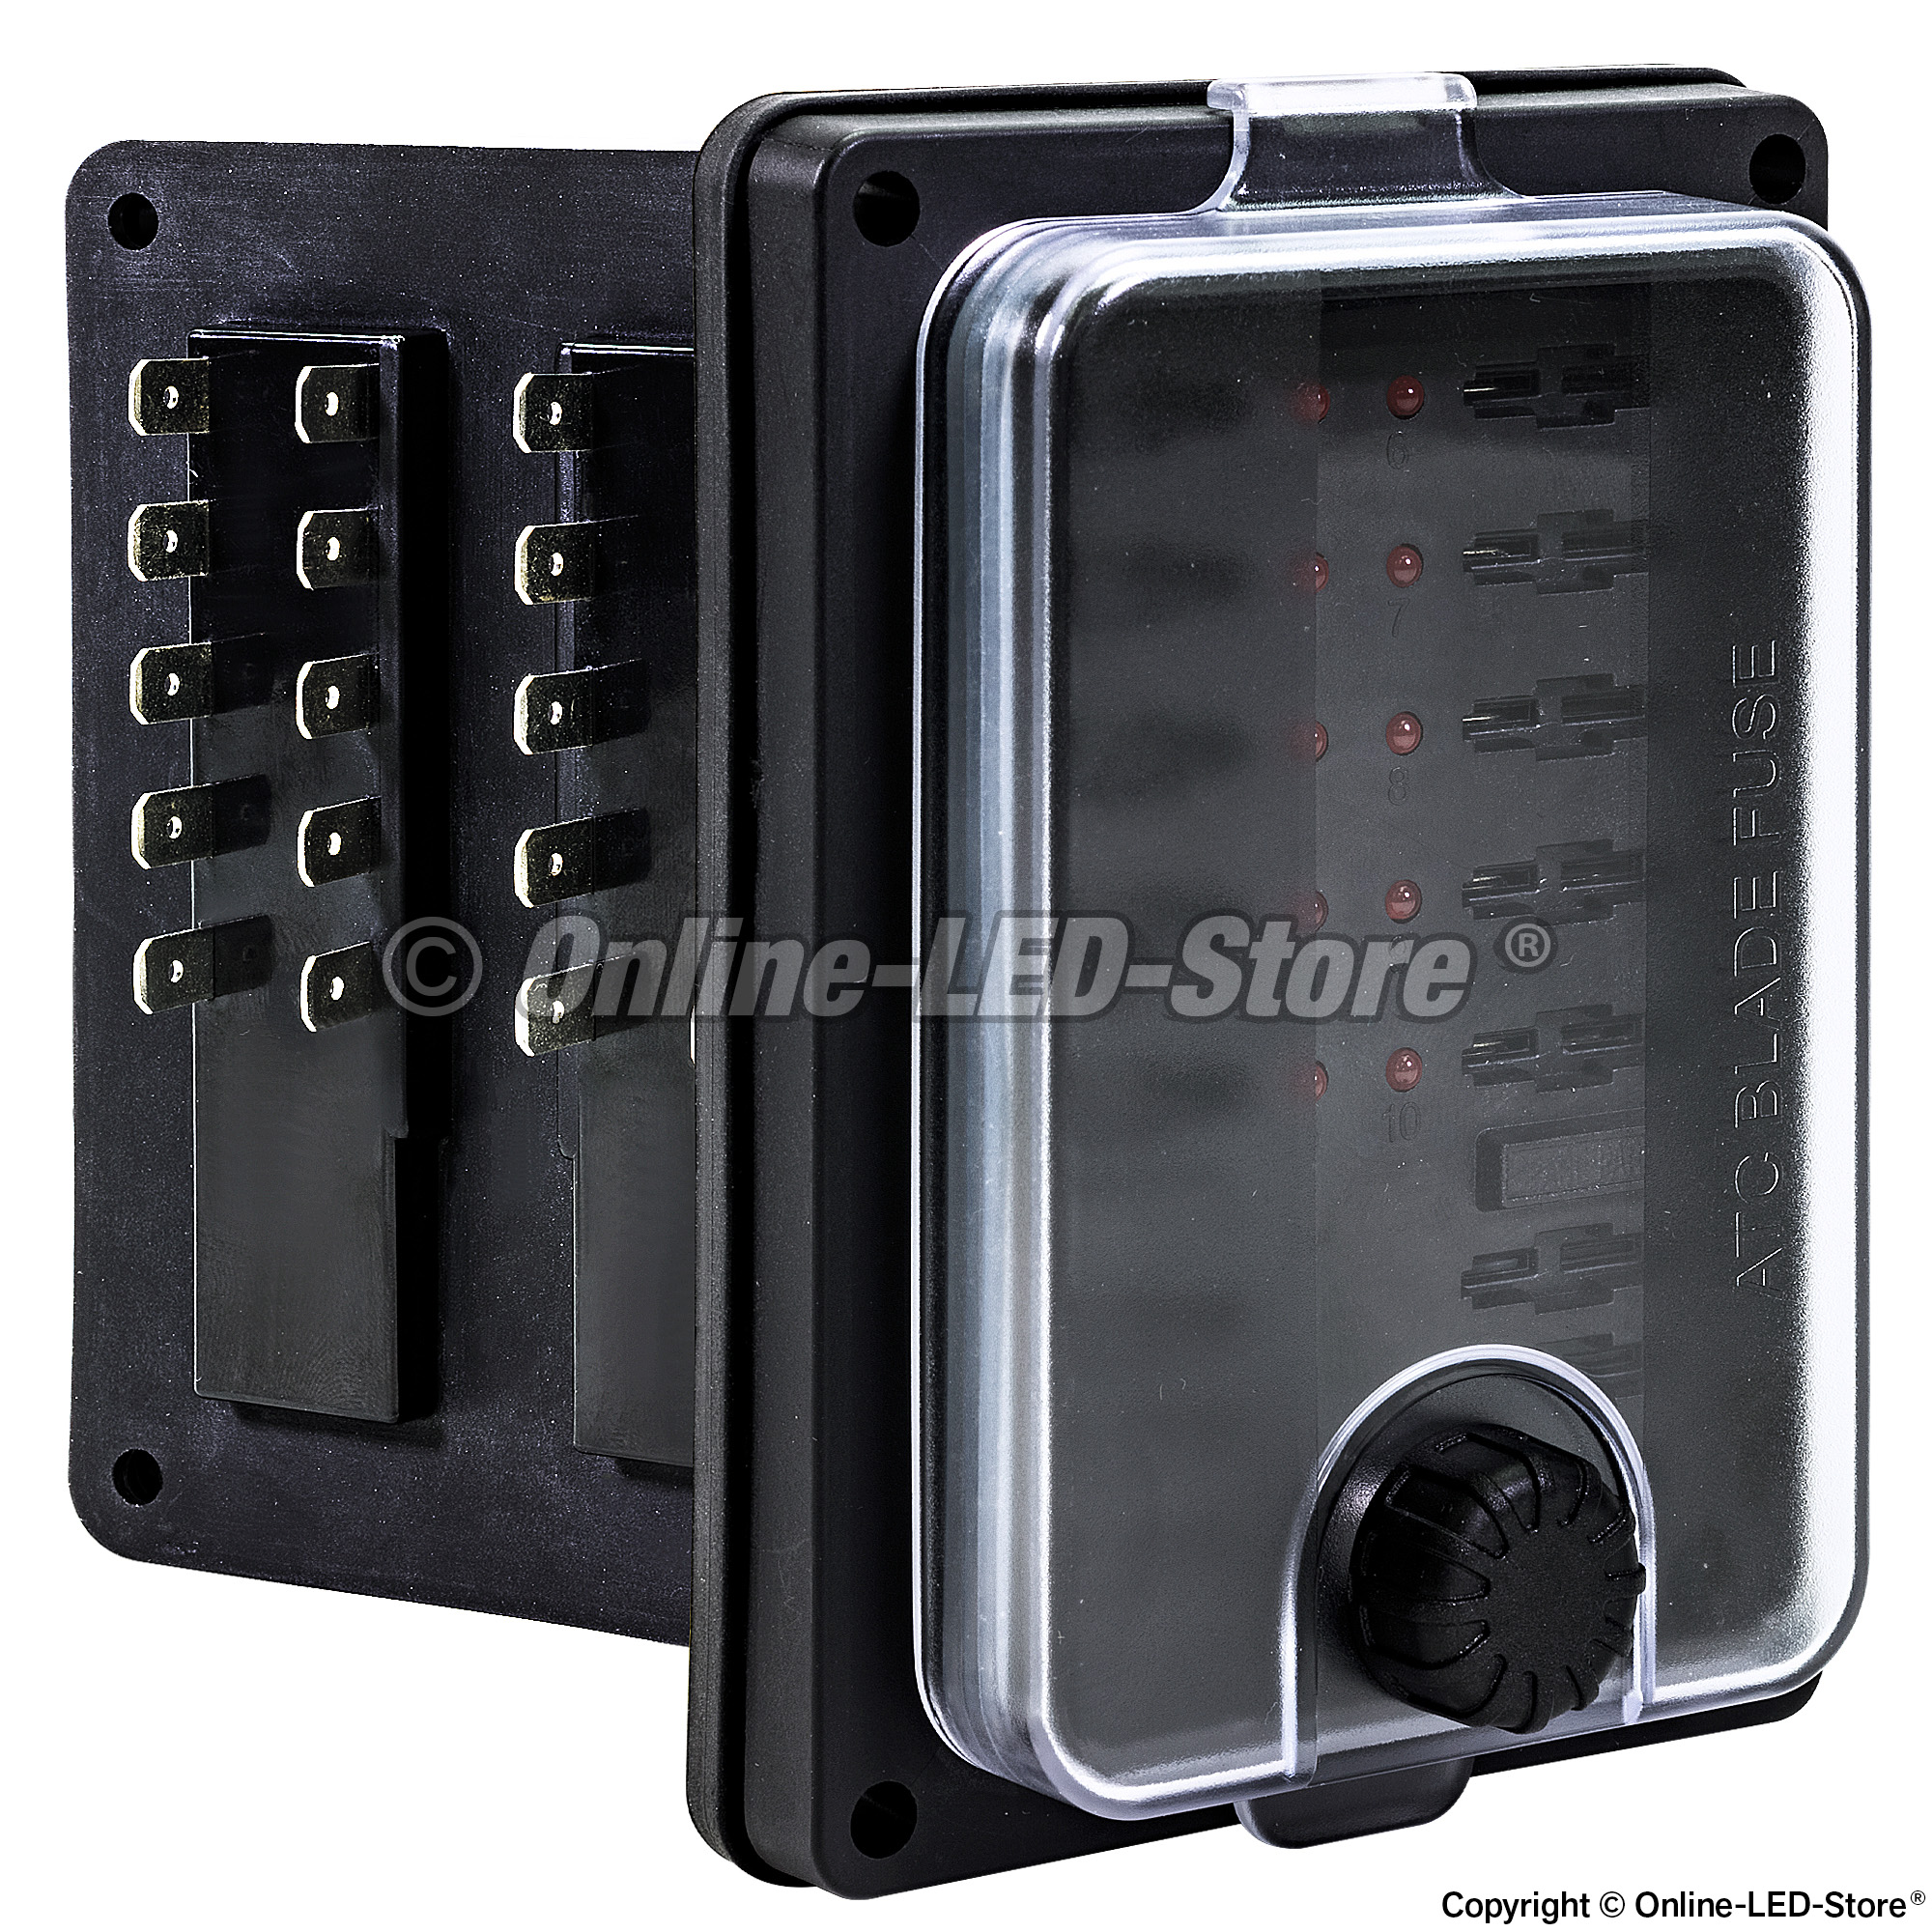 image_PSZACCEPS053H SPMAIN WEB_4 automotive fuse boxes led fuse box fuse box for sale fuse box for sale at bayanpartner.co